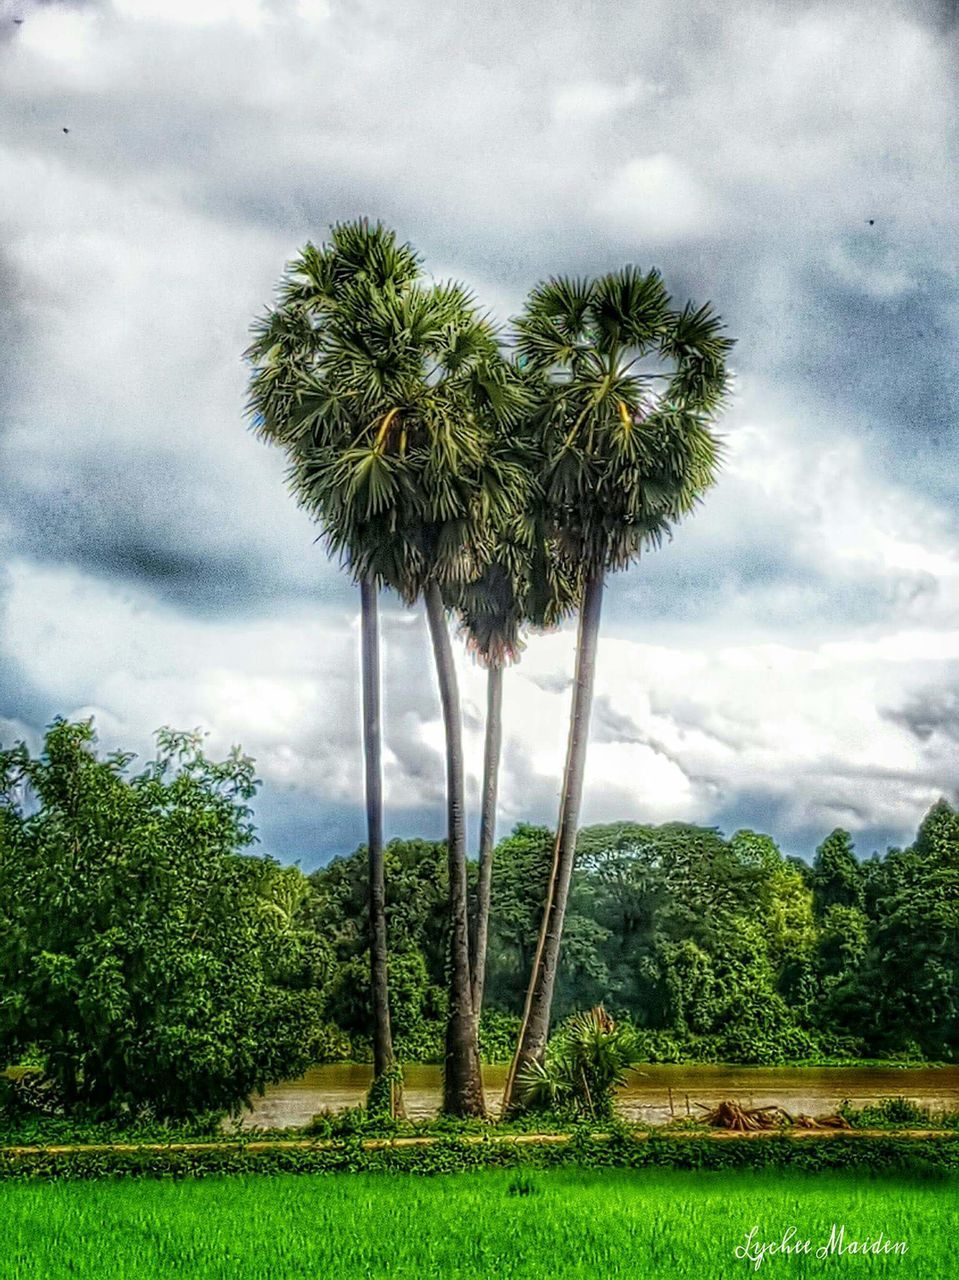 tree, cloud - sky, sky, growth, nature, cloud, palm tree, green color, beauty in nature, tranquility, scenics, tranquil scene, green, cloudscape, day, idyllic, no people, lush foliage, outdoors, low angle view, field, storm cloud, plant, landscape, grass